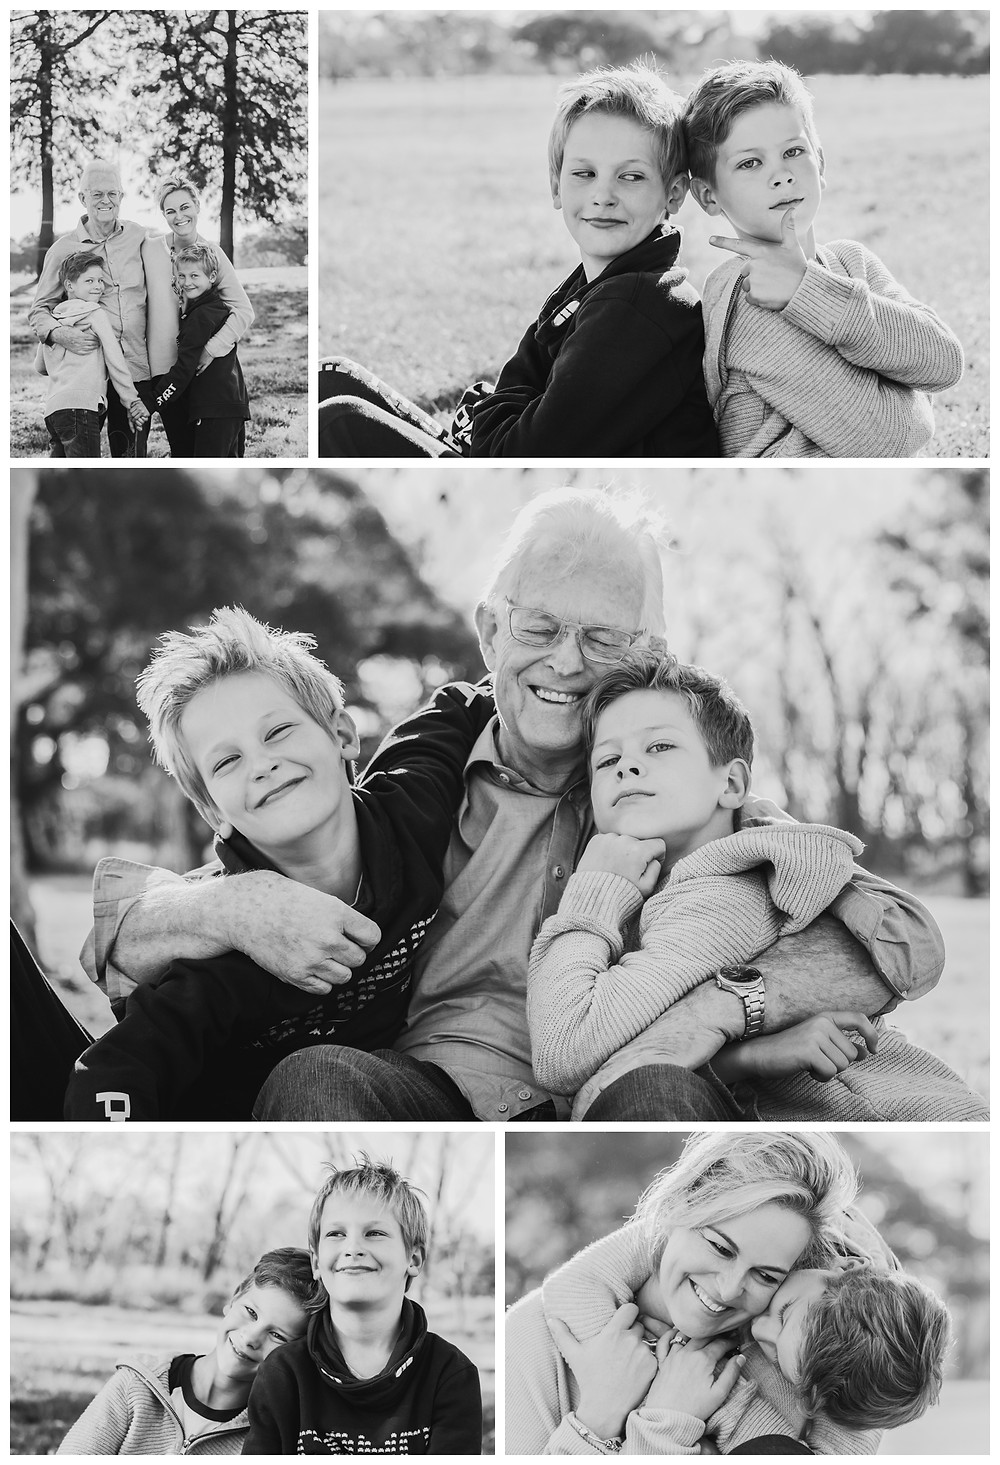 Delta Park family portrait shoot - Leigh 3 - black and white photography